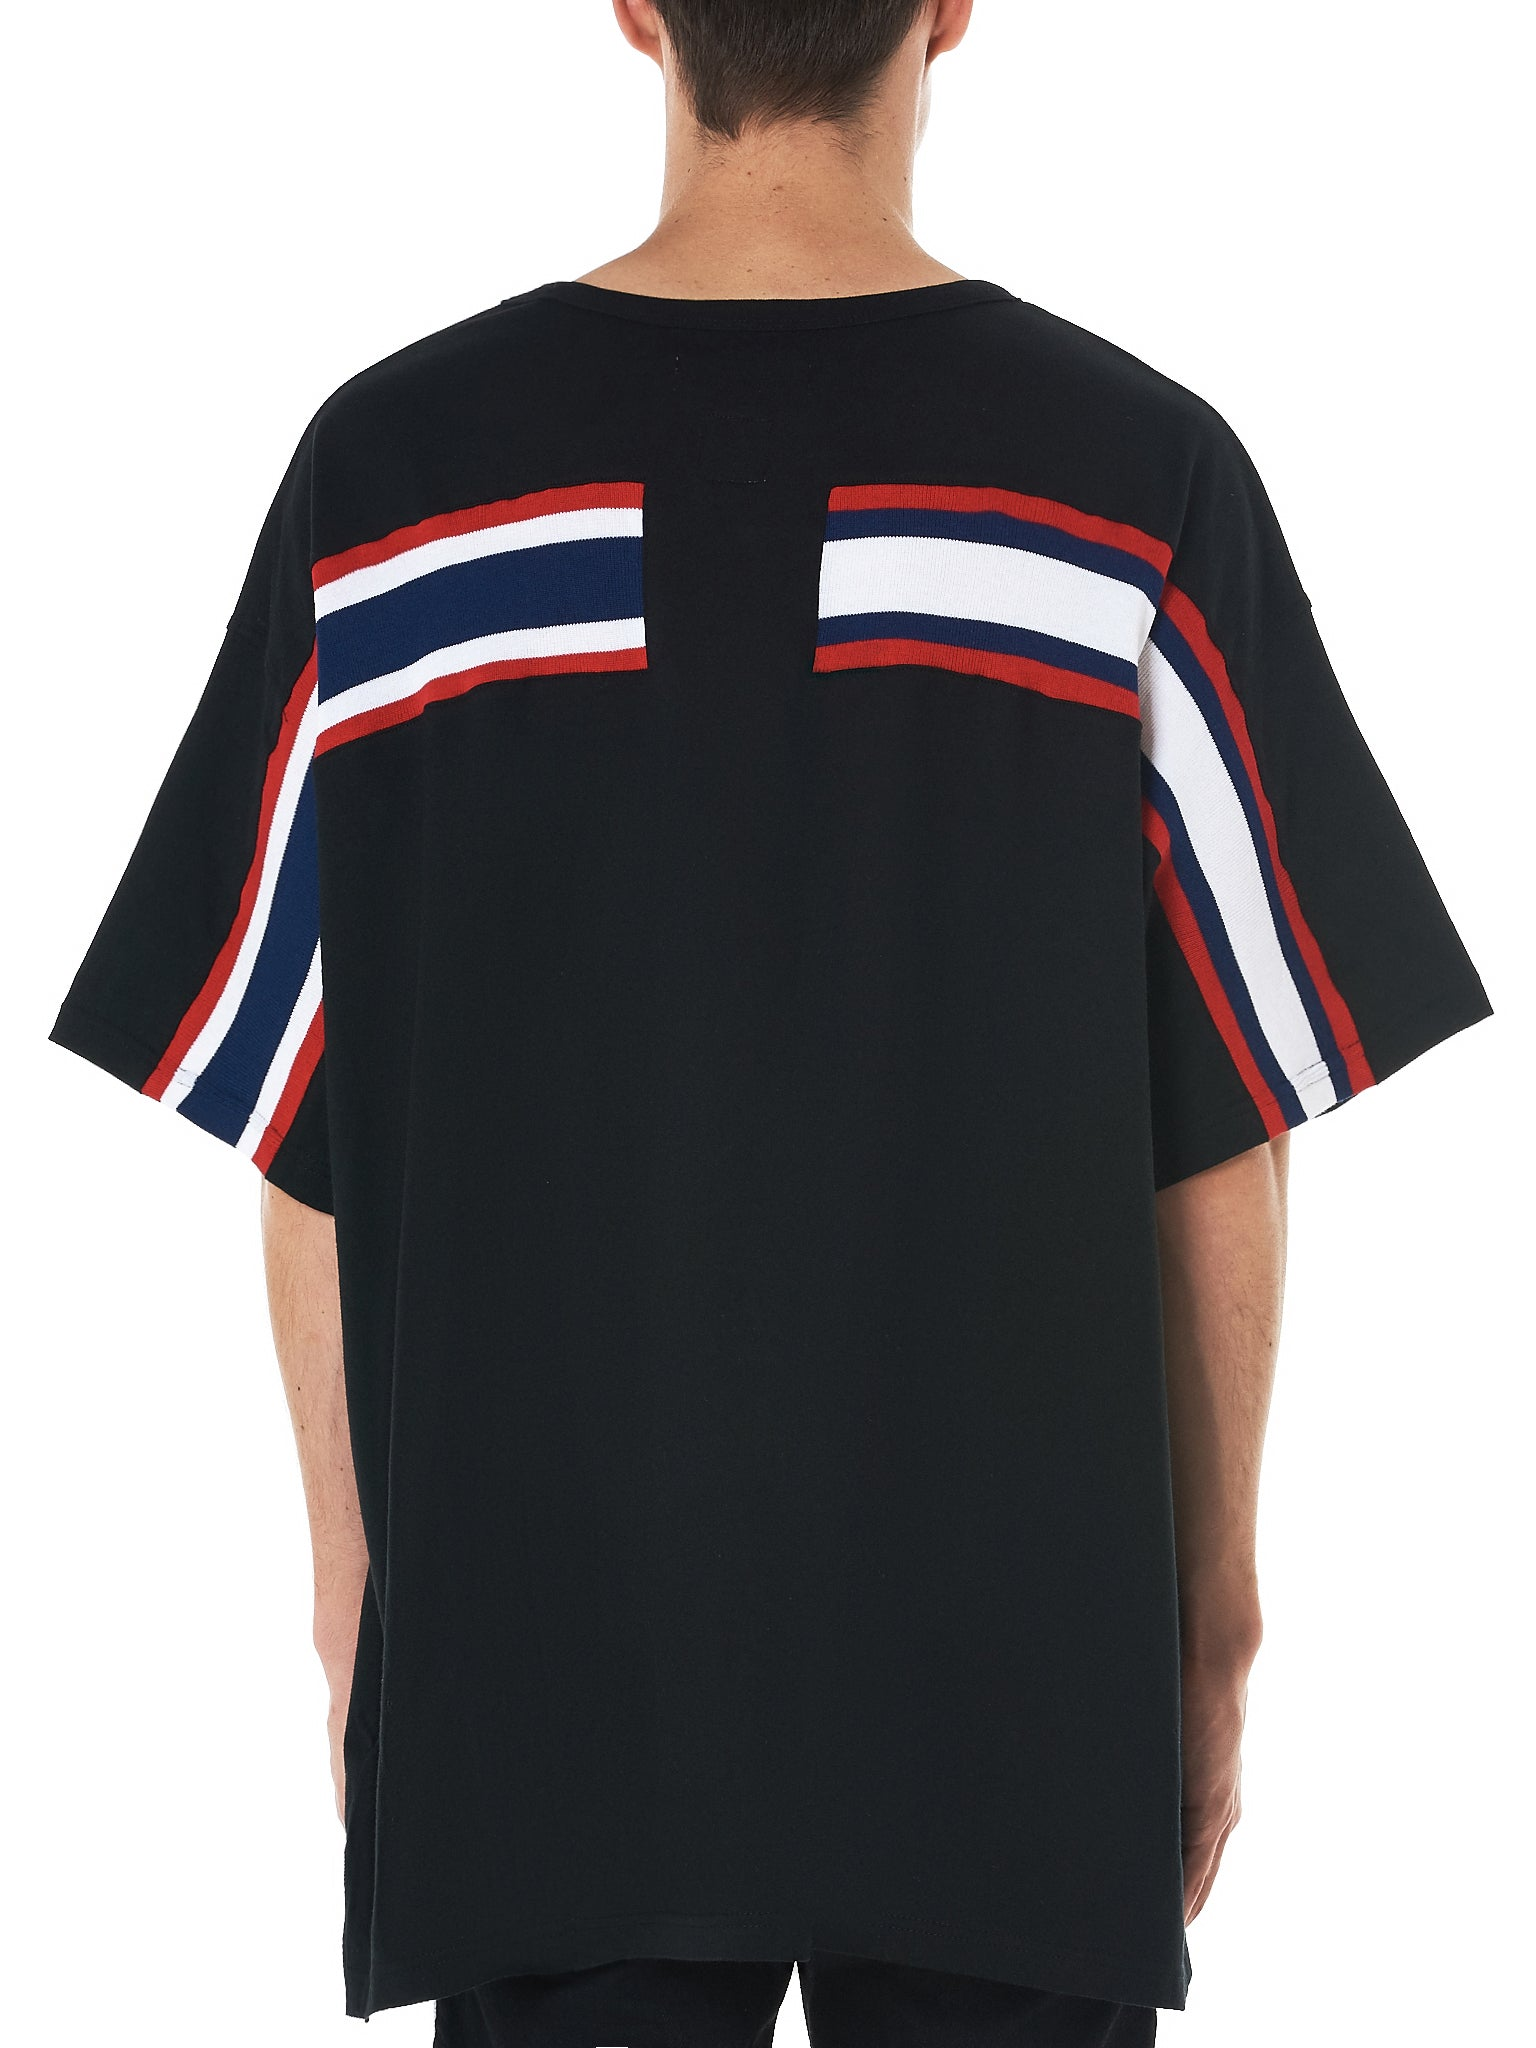 Knit Striped Tee (RB-TEE-U18-BLACK)